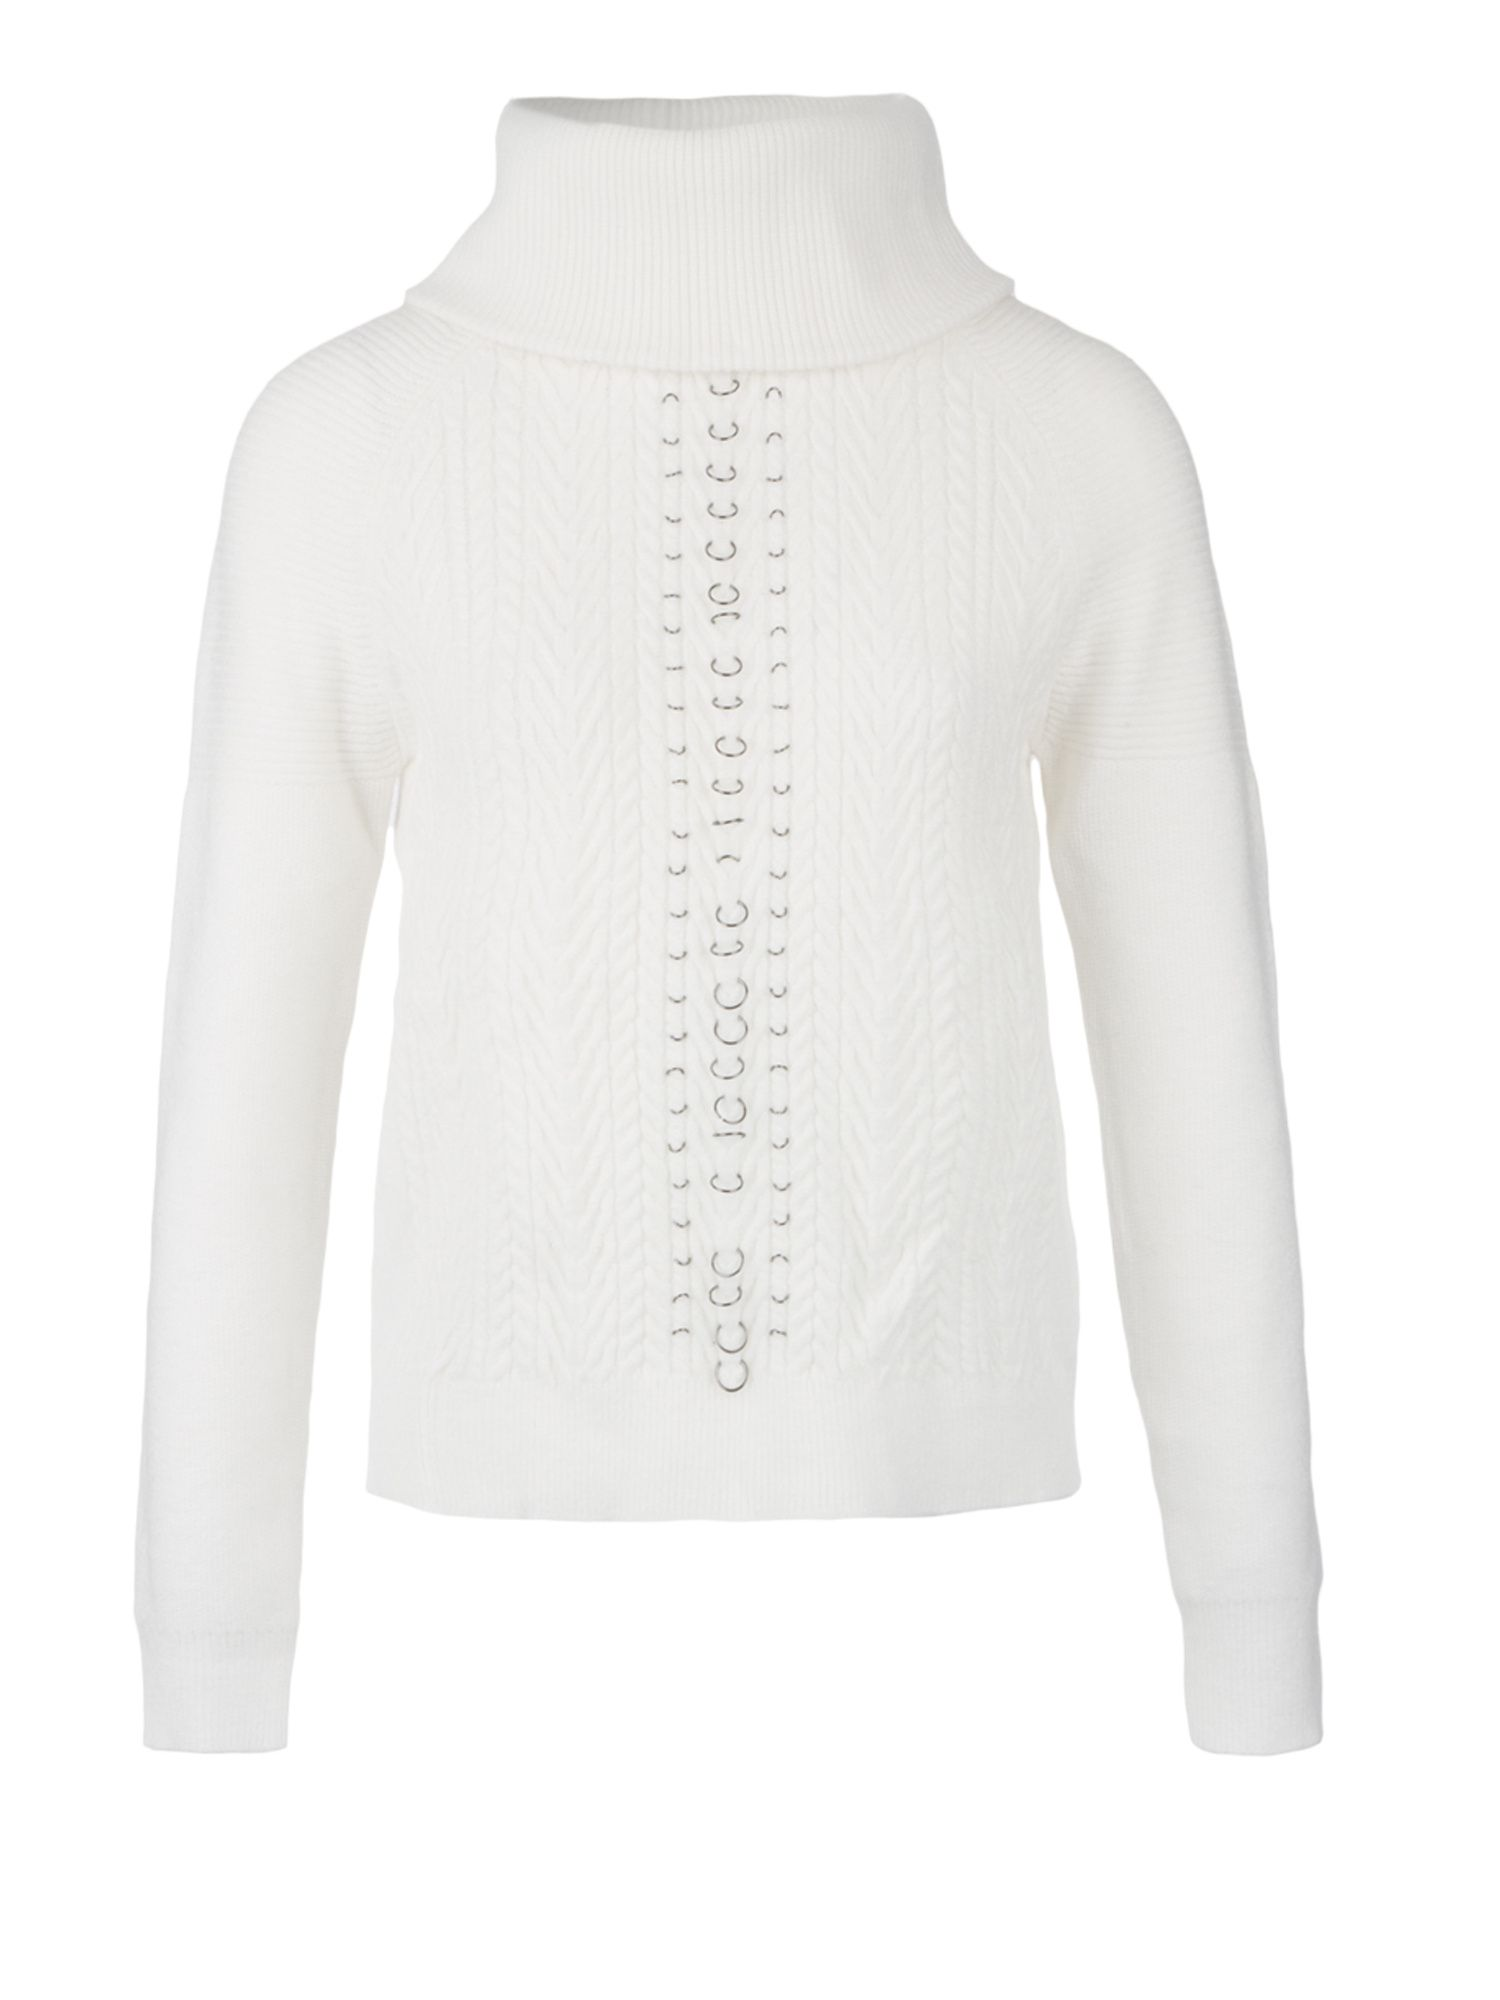 Morgan Morgan Rings Embellished Cable Knit Jumper, White